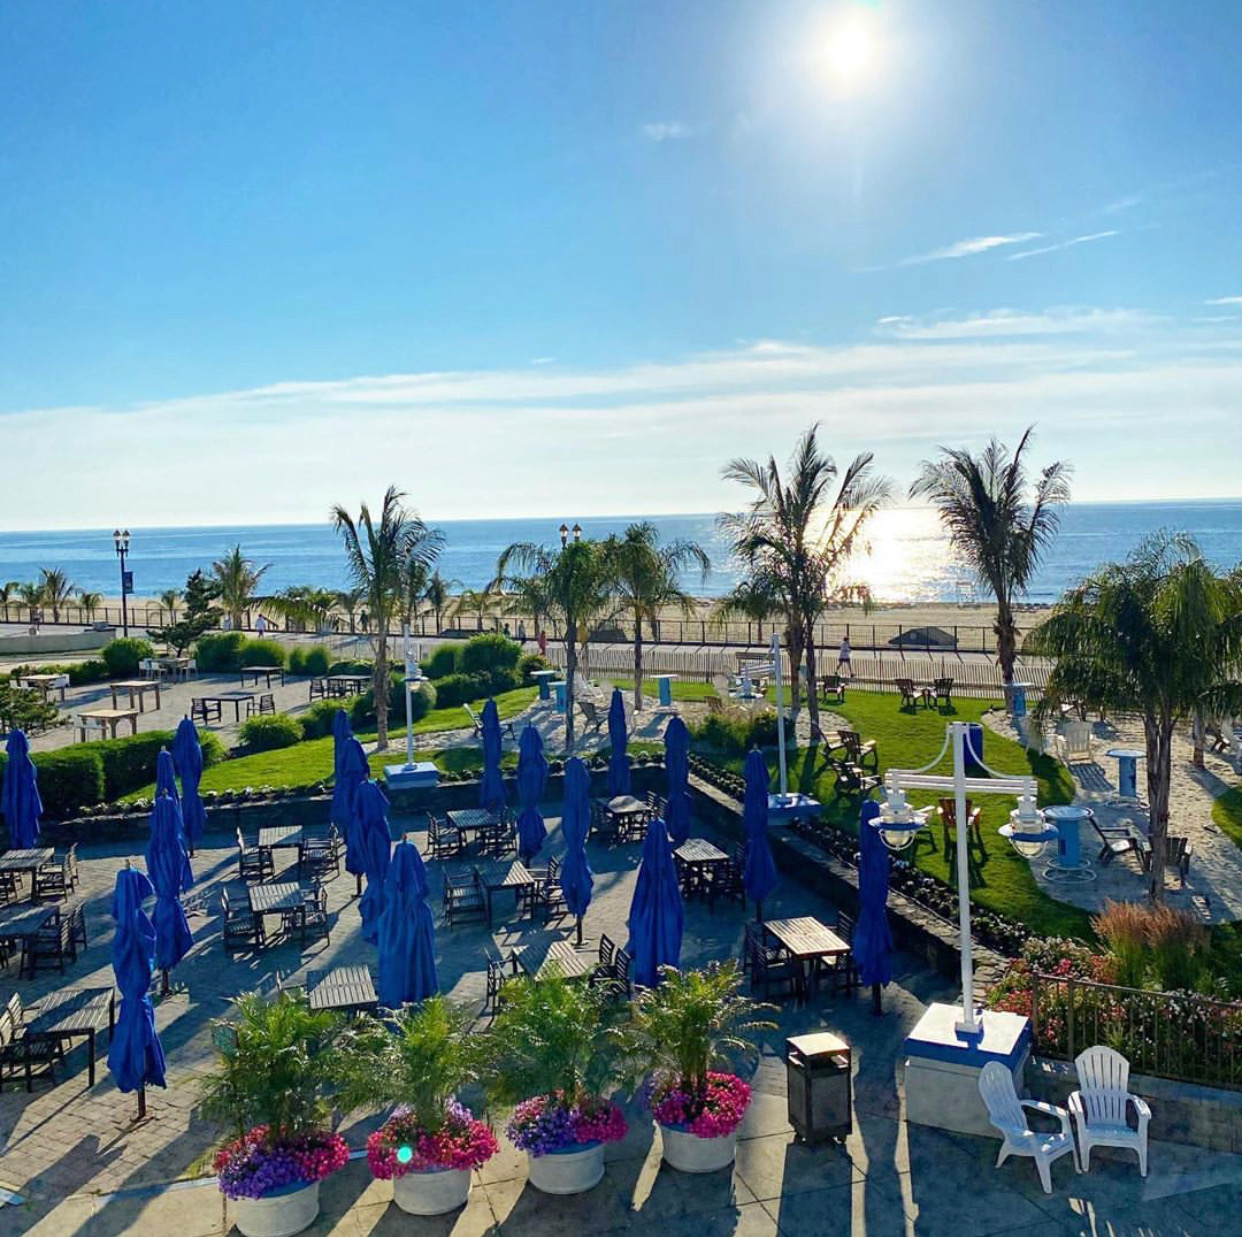 nj mom ocean place resort and spa resorts in new jersey kid friendly family